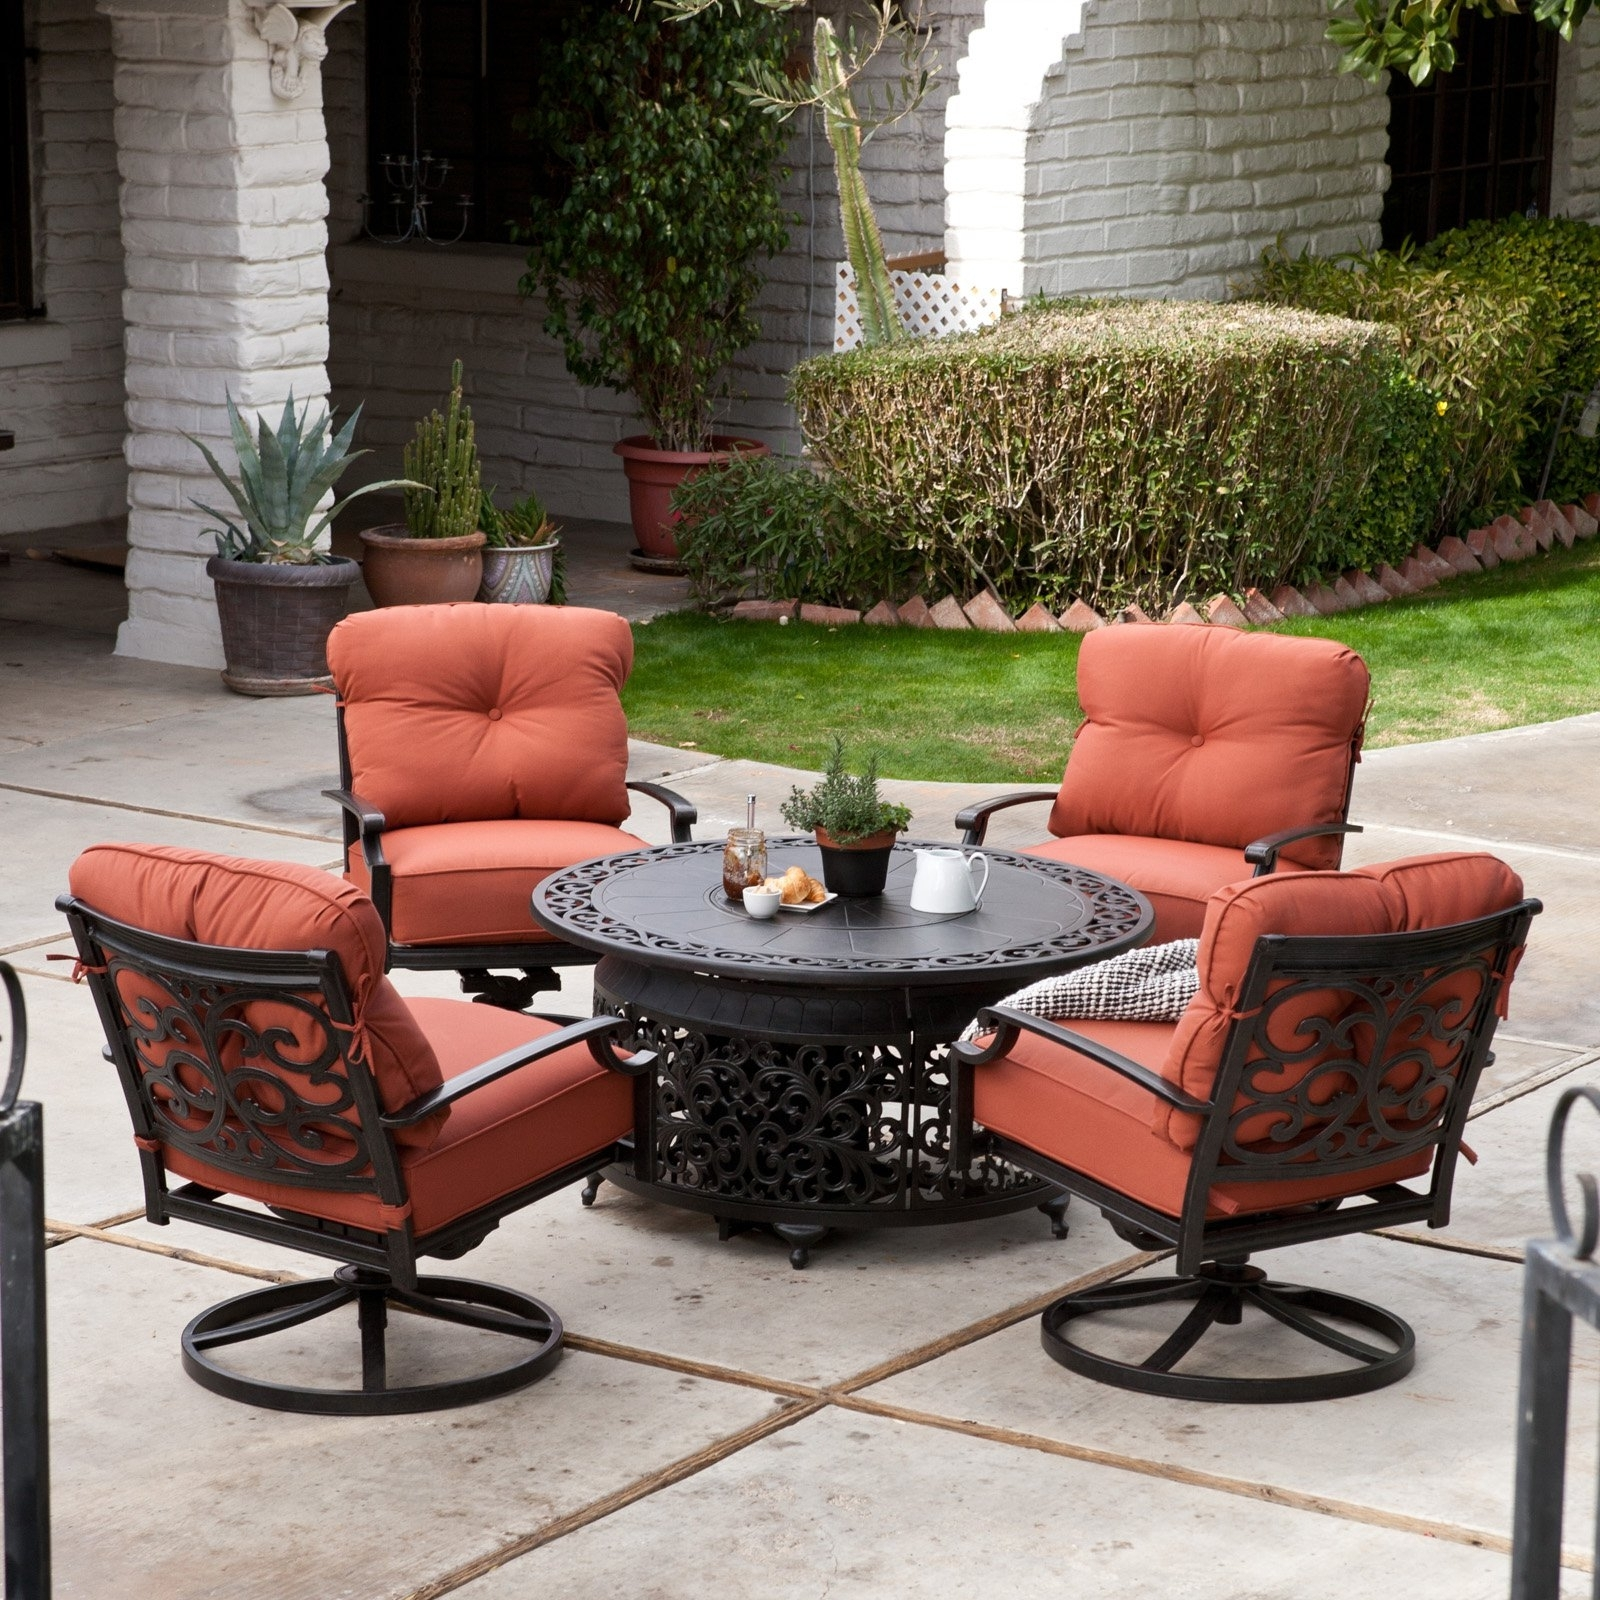 Patio Furniture At Sears (View 6 of 20)